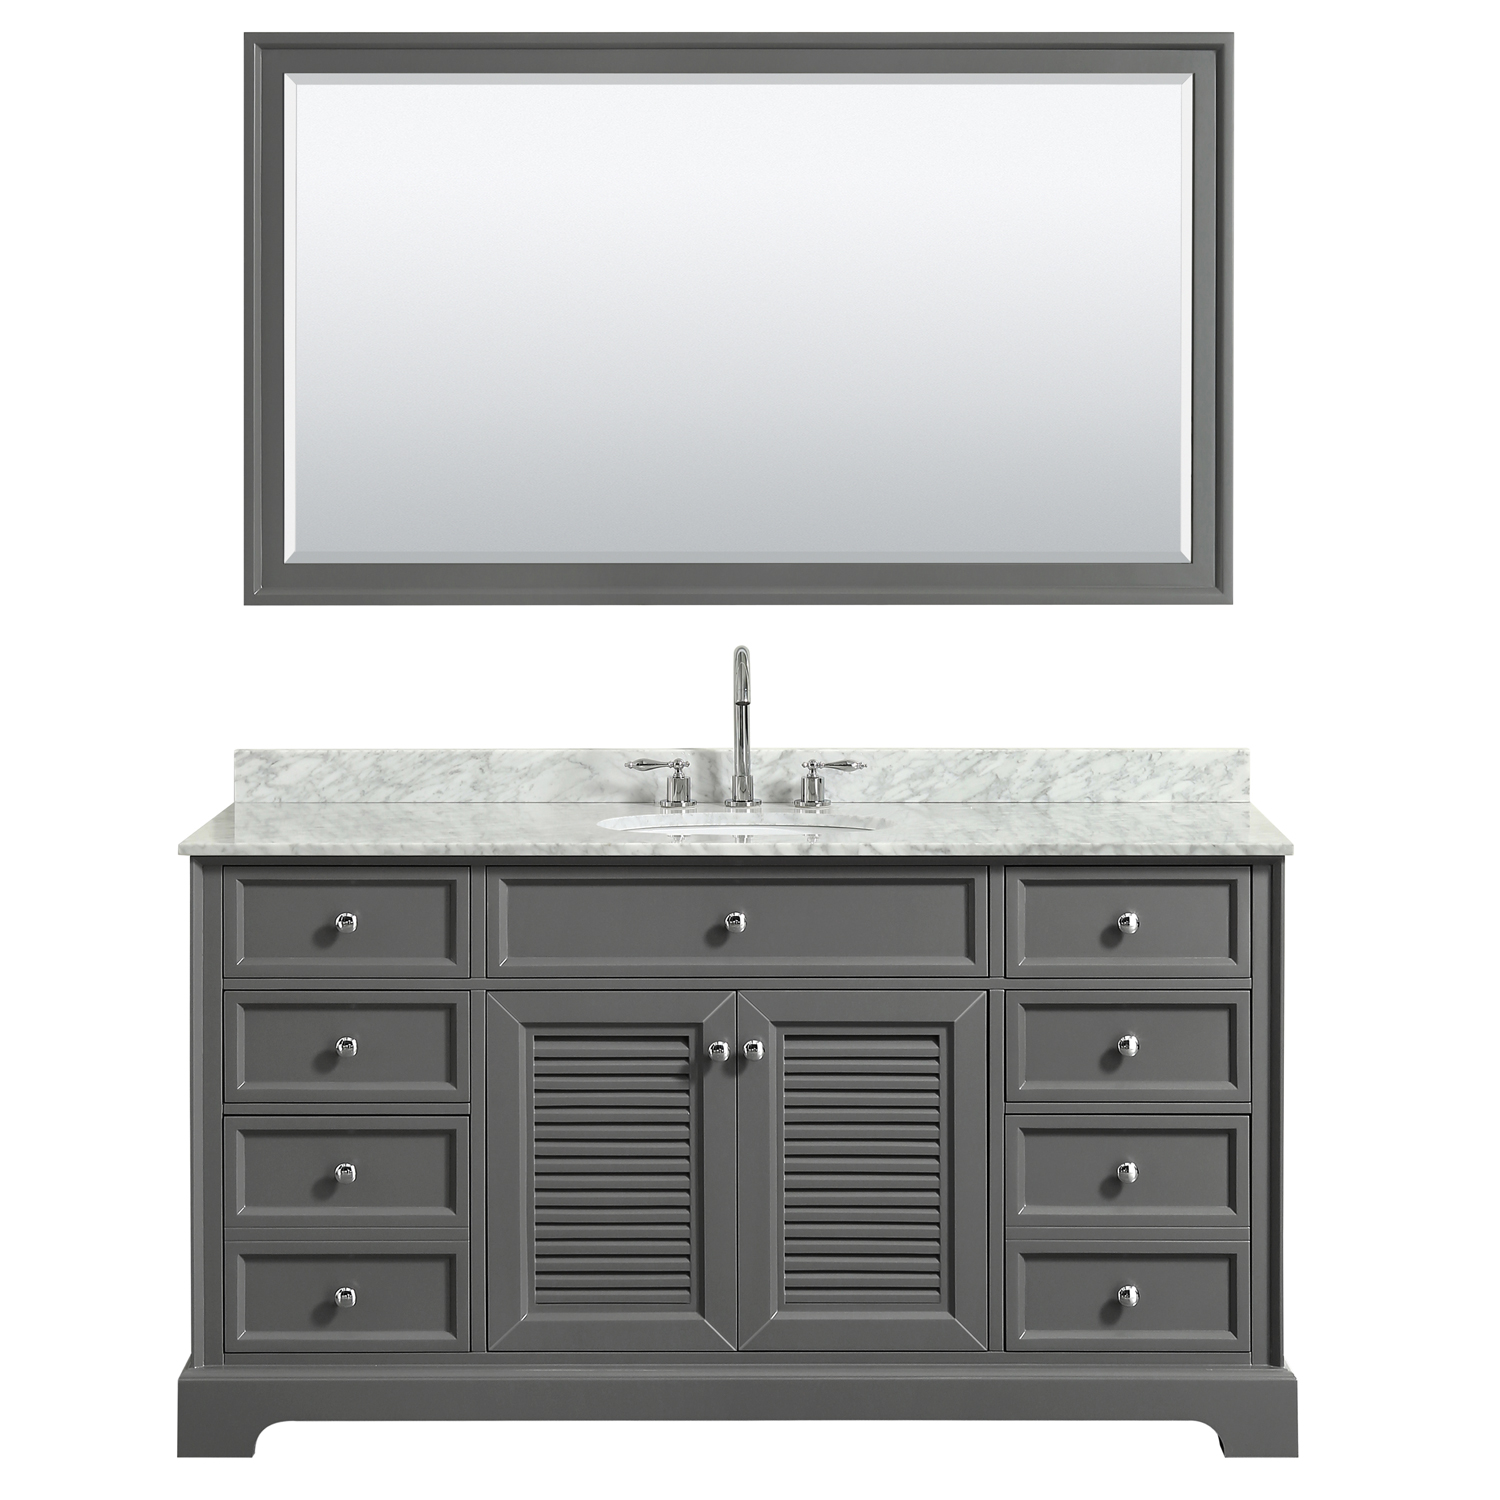 """60"""" Single Bathroom Vanity in White Carrara Marble Countertop with Undermount Sink, Mirror and Color Options"""